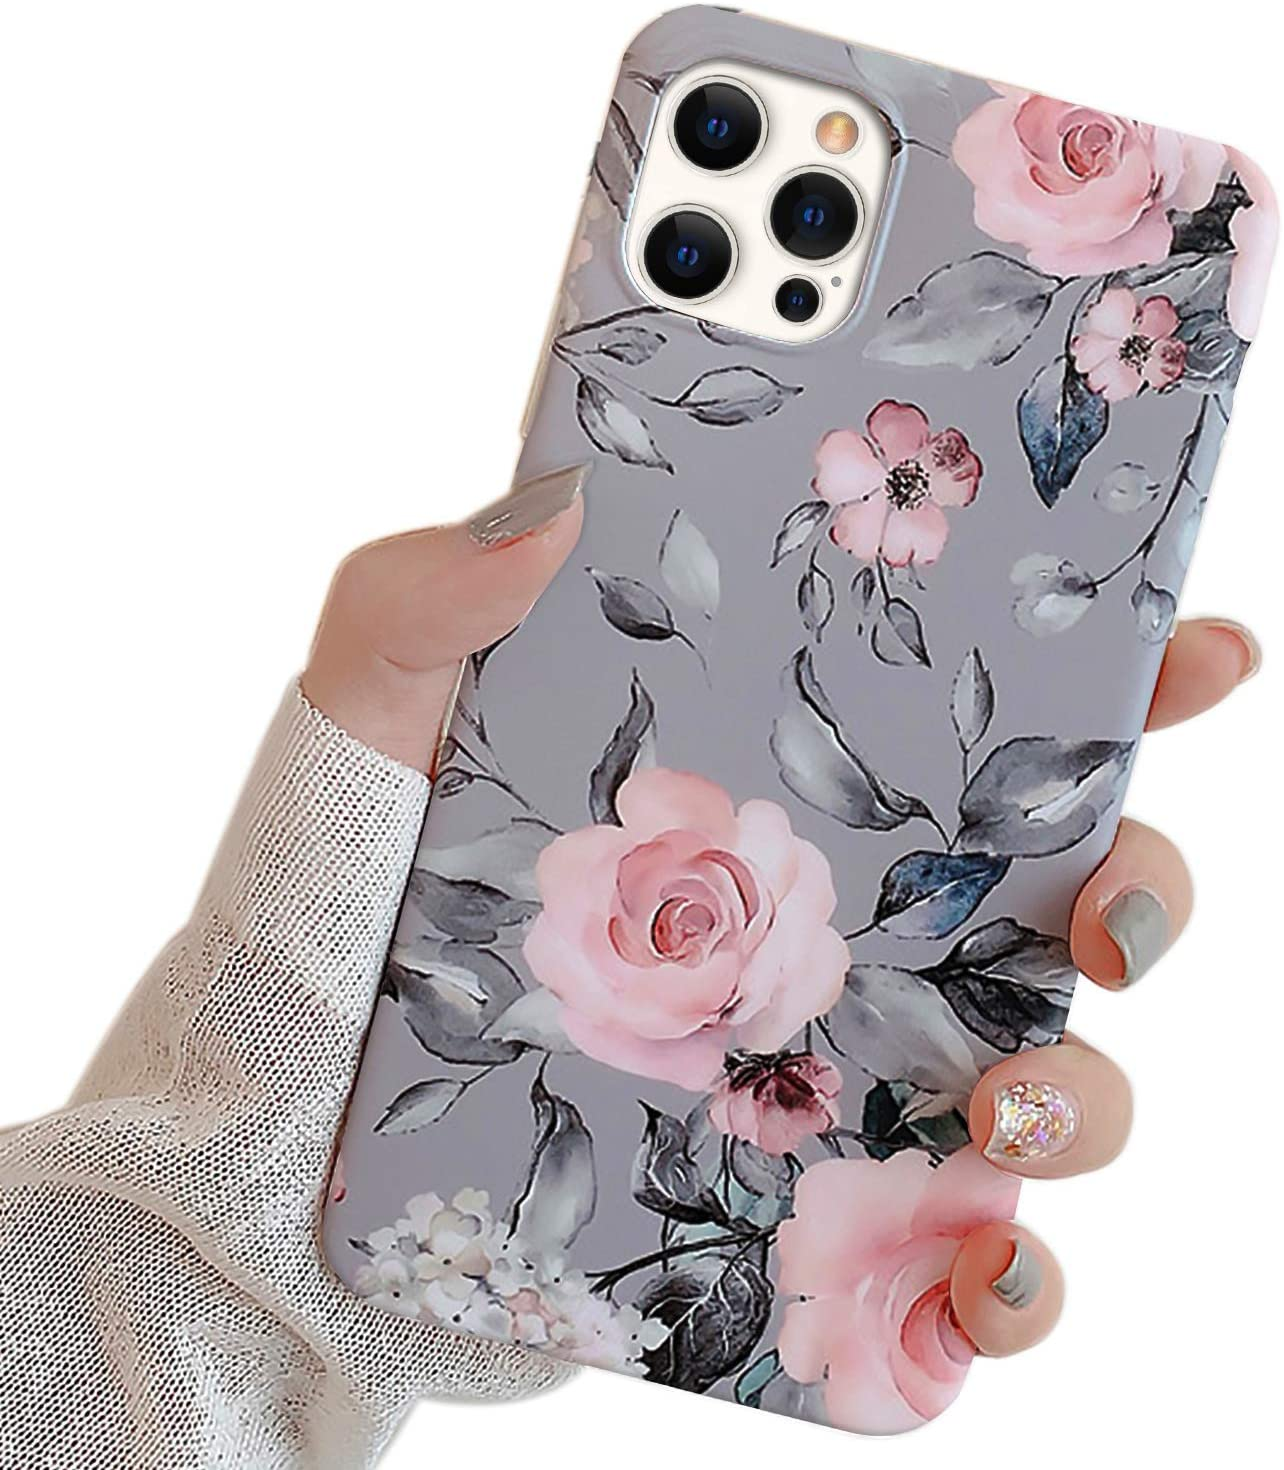 Ownest Compatible with iPhone 12 Pro Max Case with Purple Floral and Gray Leaves for Girls Woman Leaves with Flowers Pattern Soft TPU Protective for iPhone 12 Pro Max-Pink Flowers